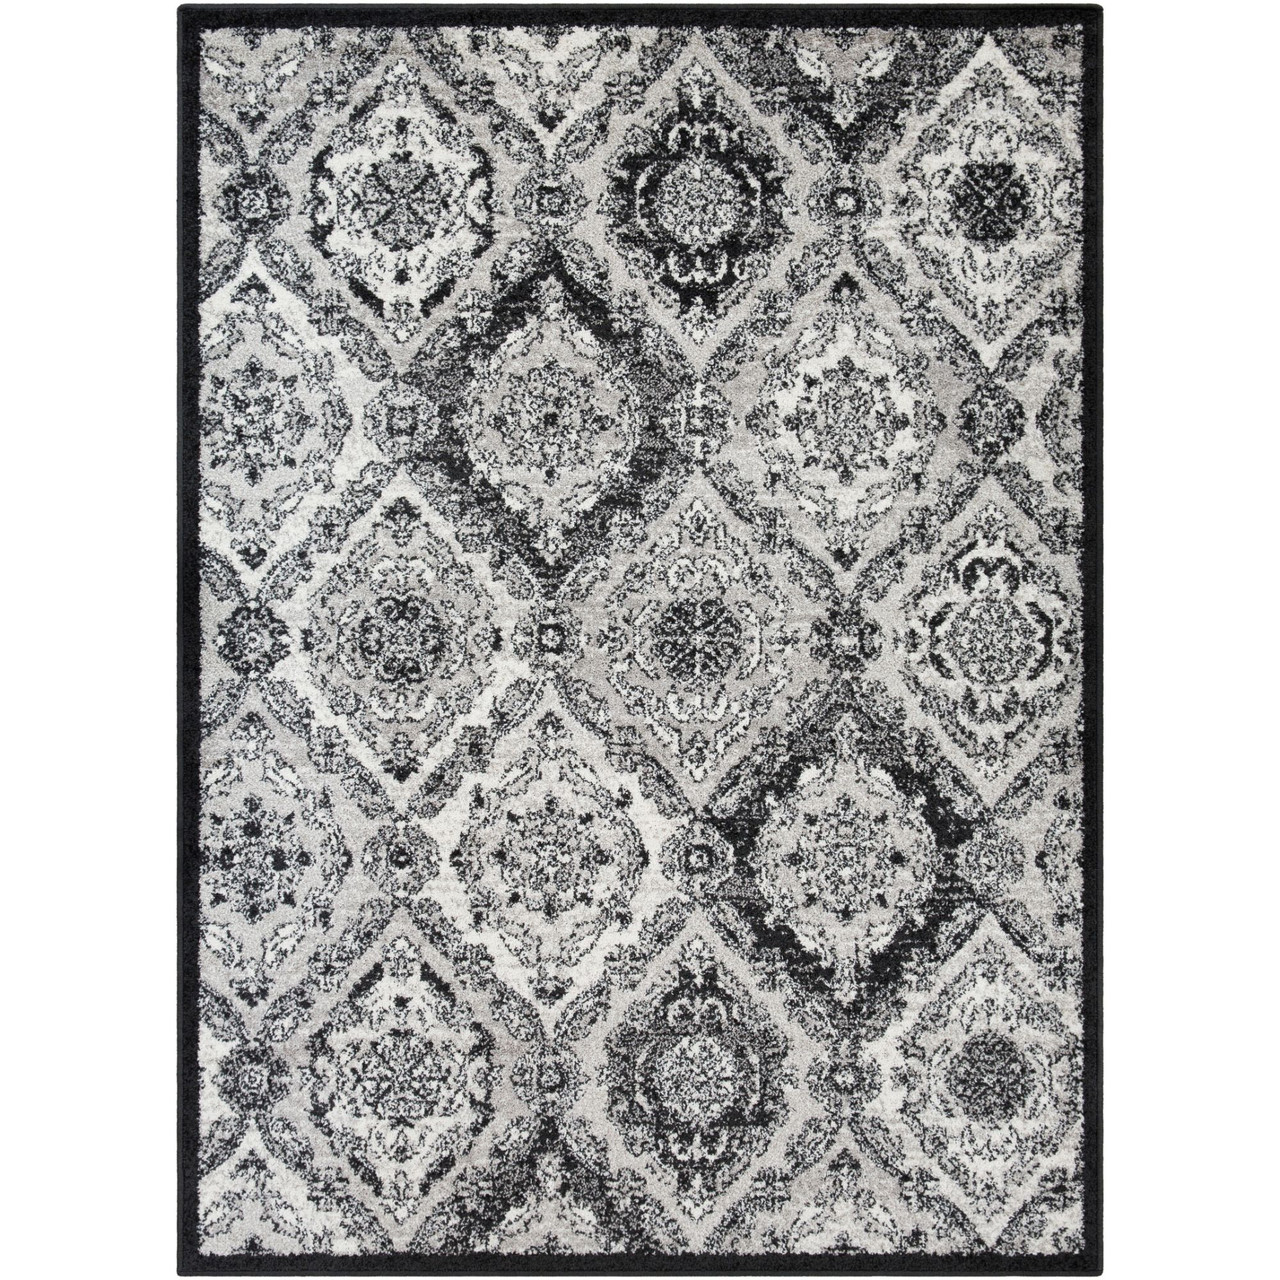 2 X 3 Black And White Distressed Finish Area Throw Rug 33428322